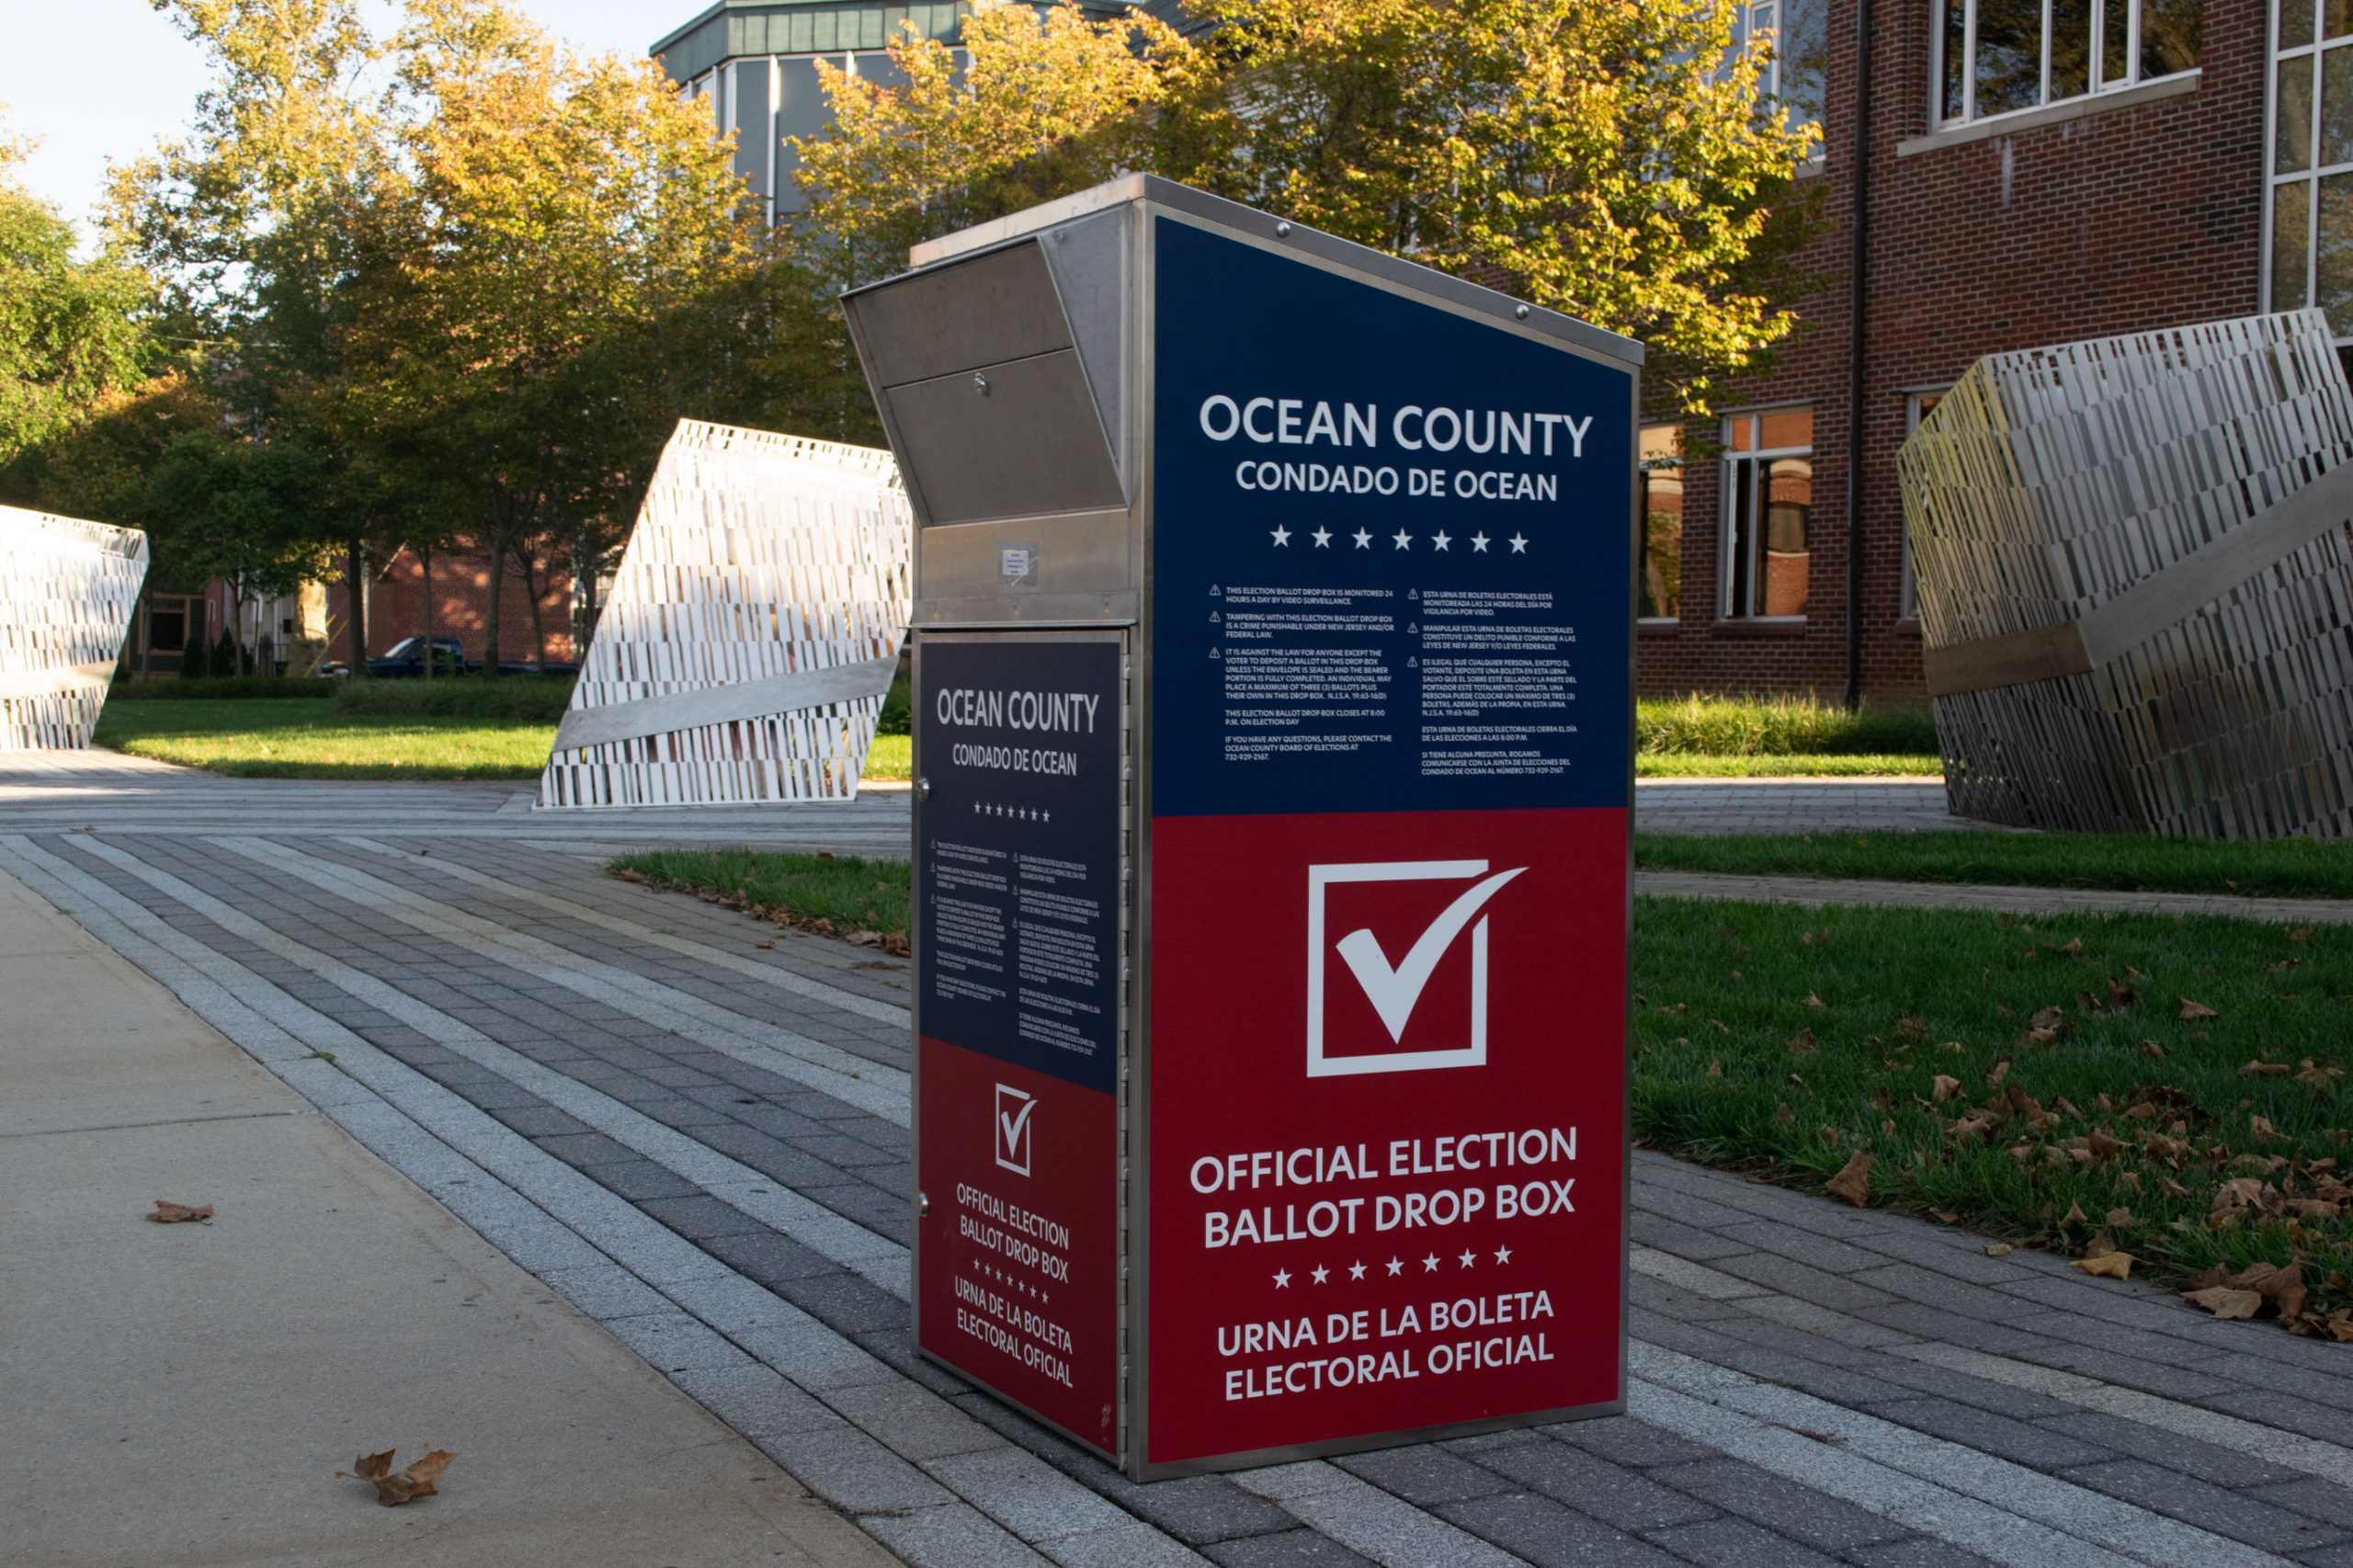 An Ocean County ballot drop box for the 2020 election. (Photo: Daniel Nee)